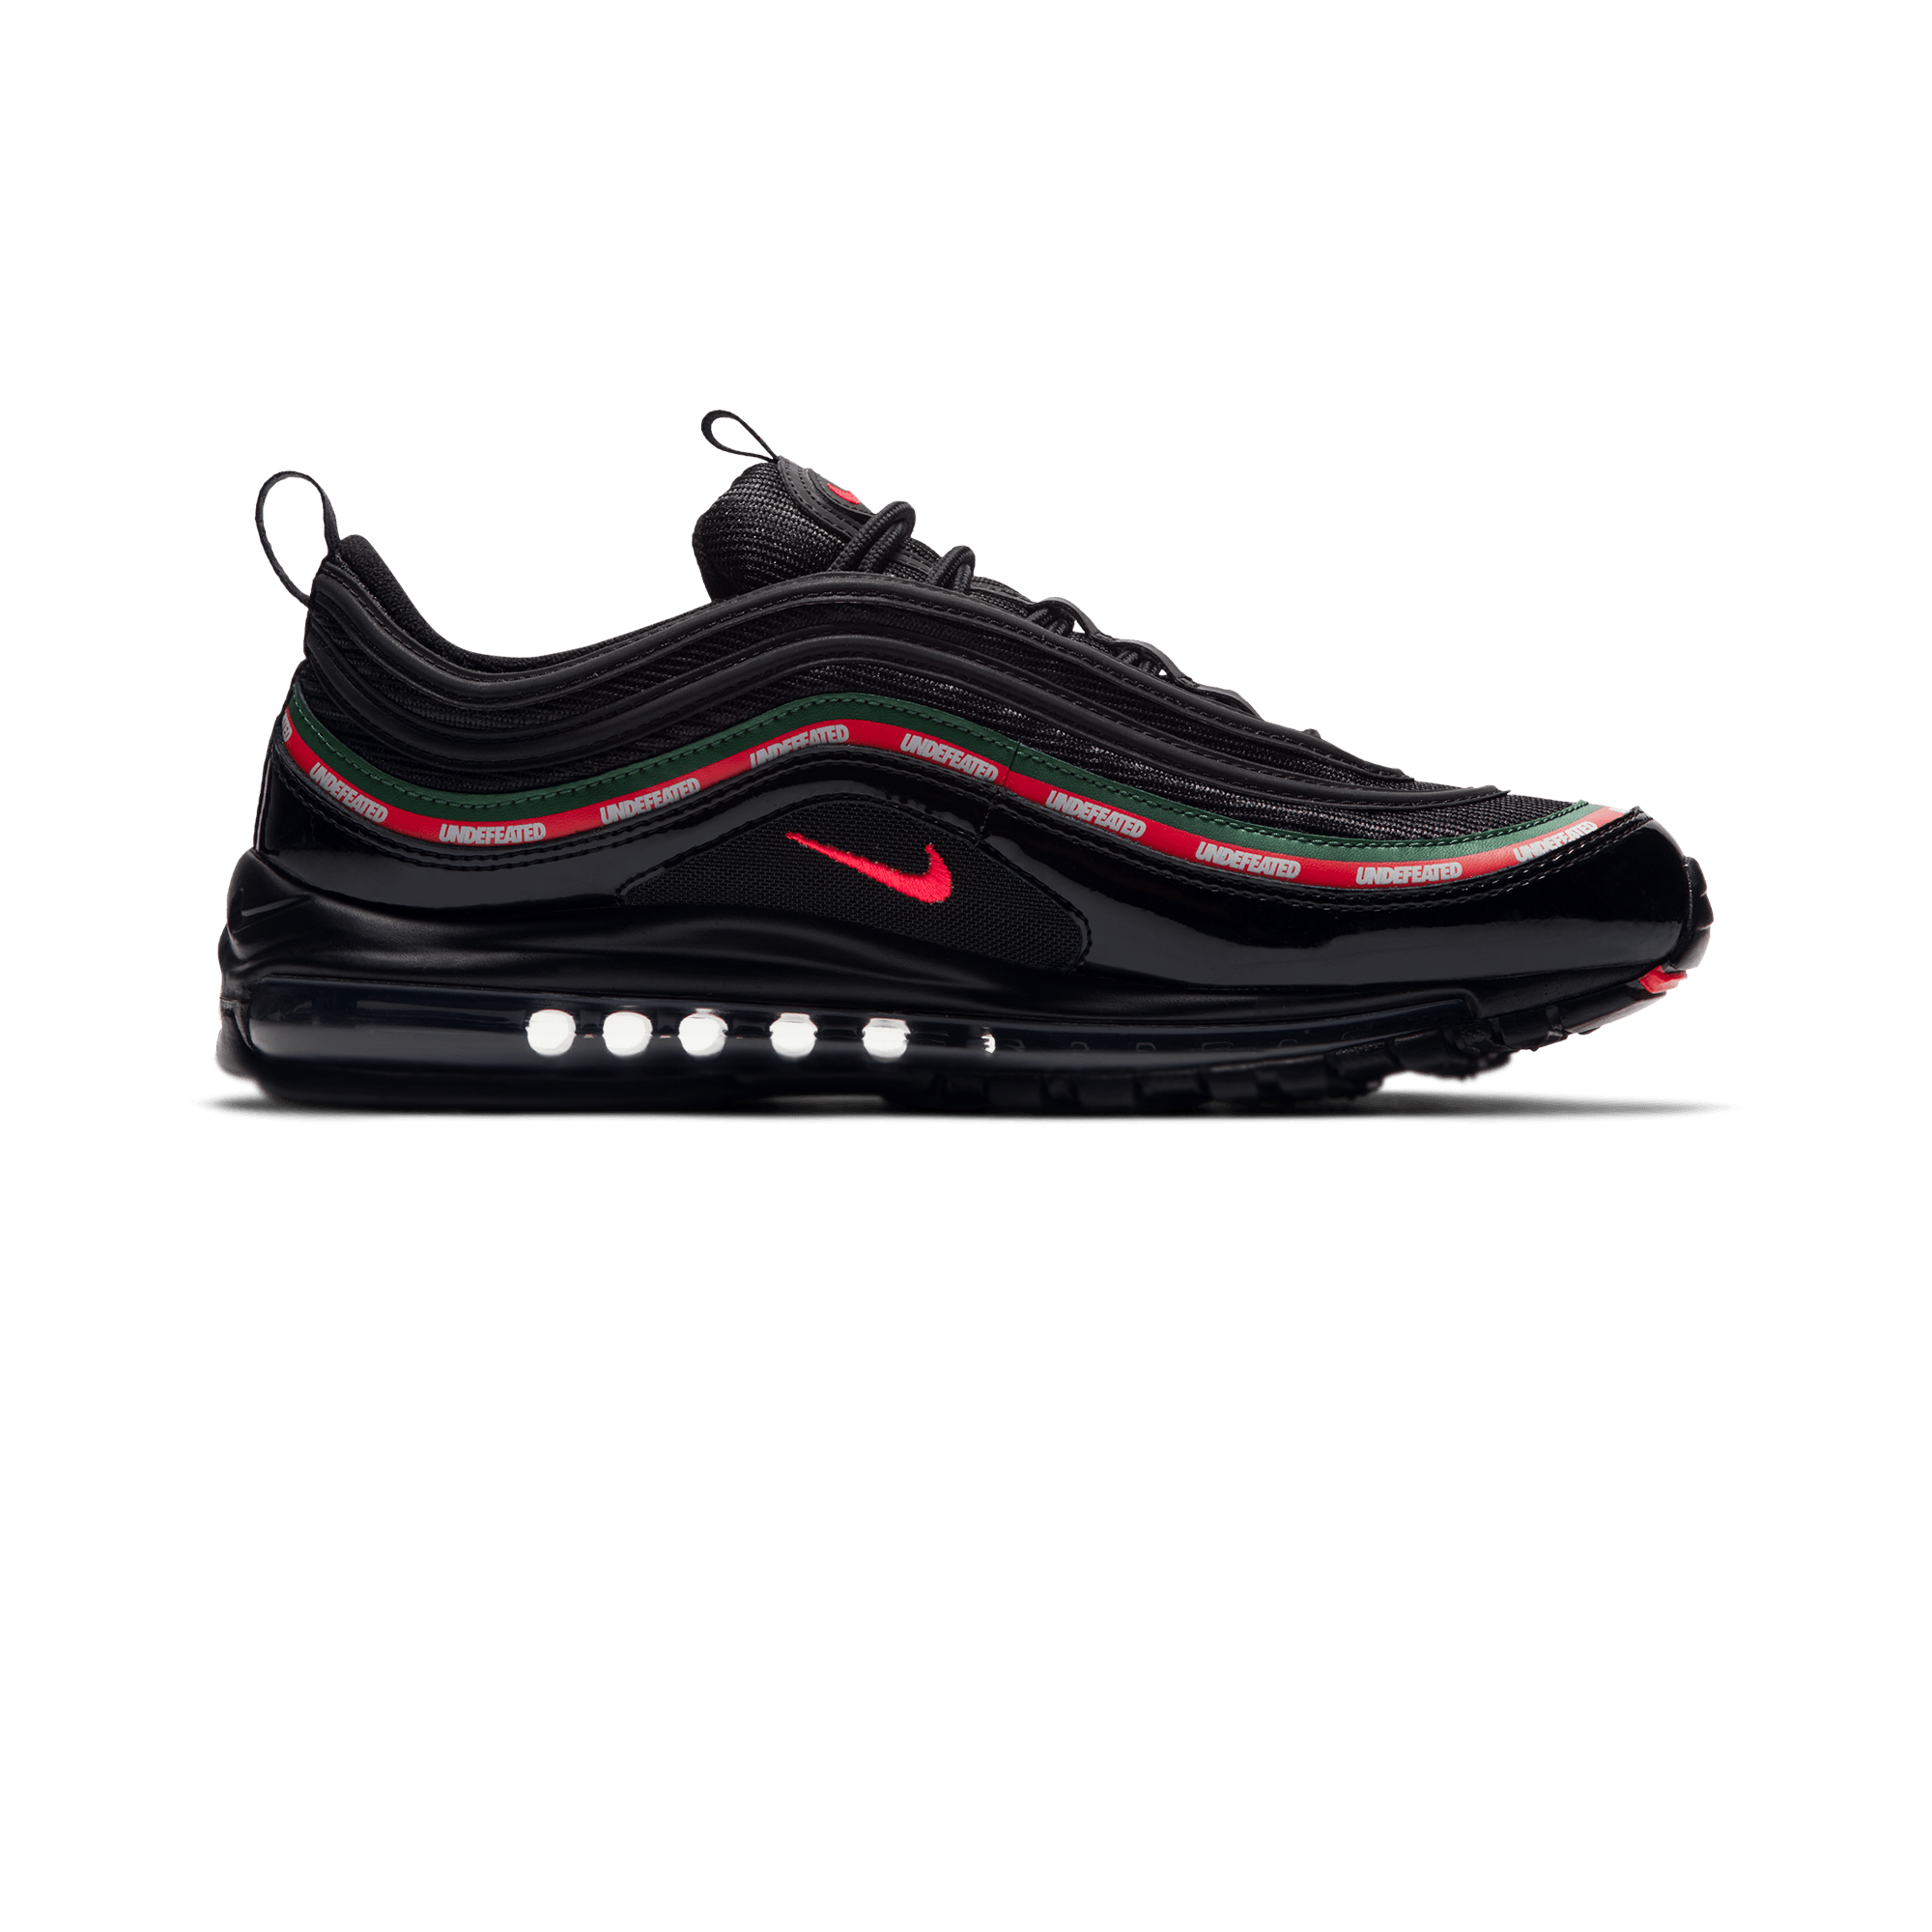 Cheap Nike Air Max 97 Women's Shoe. Cheap Nike IE